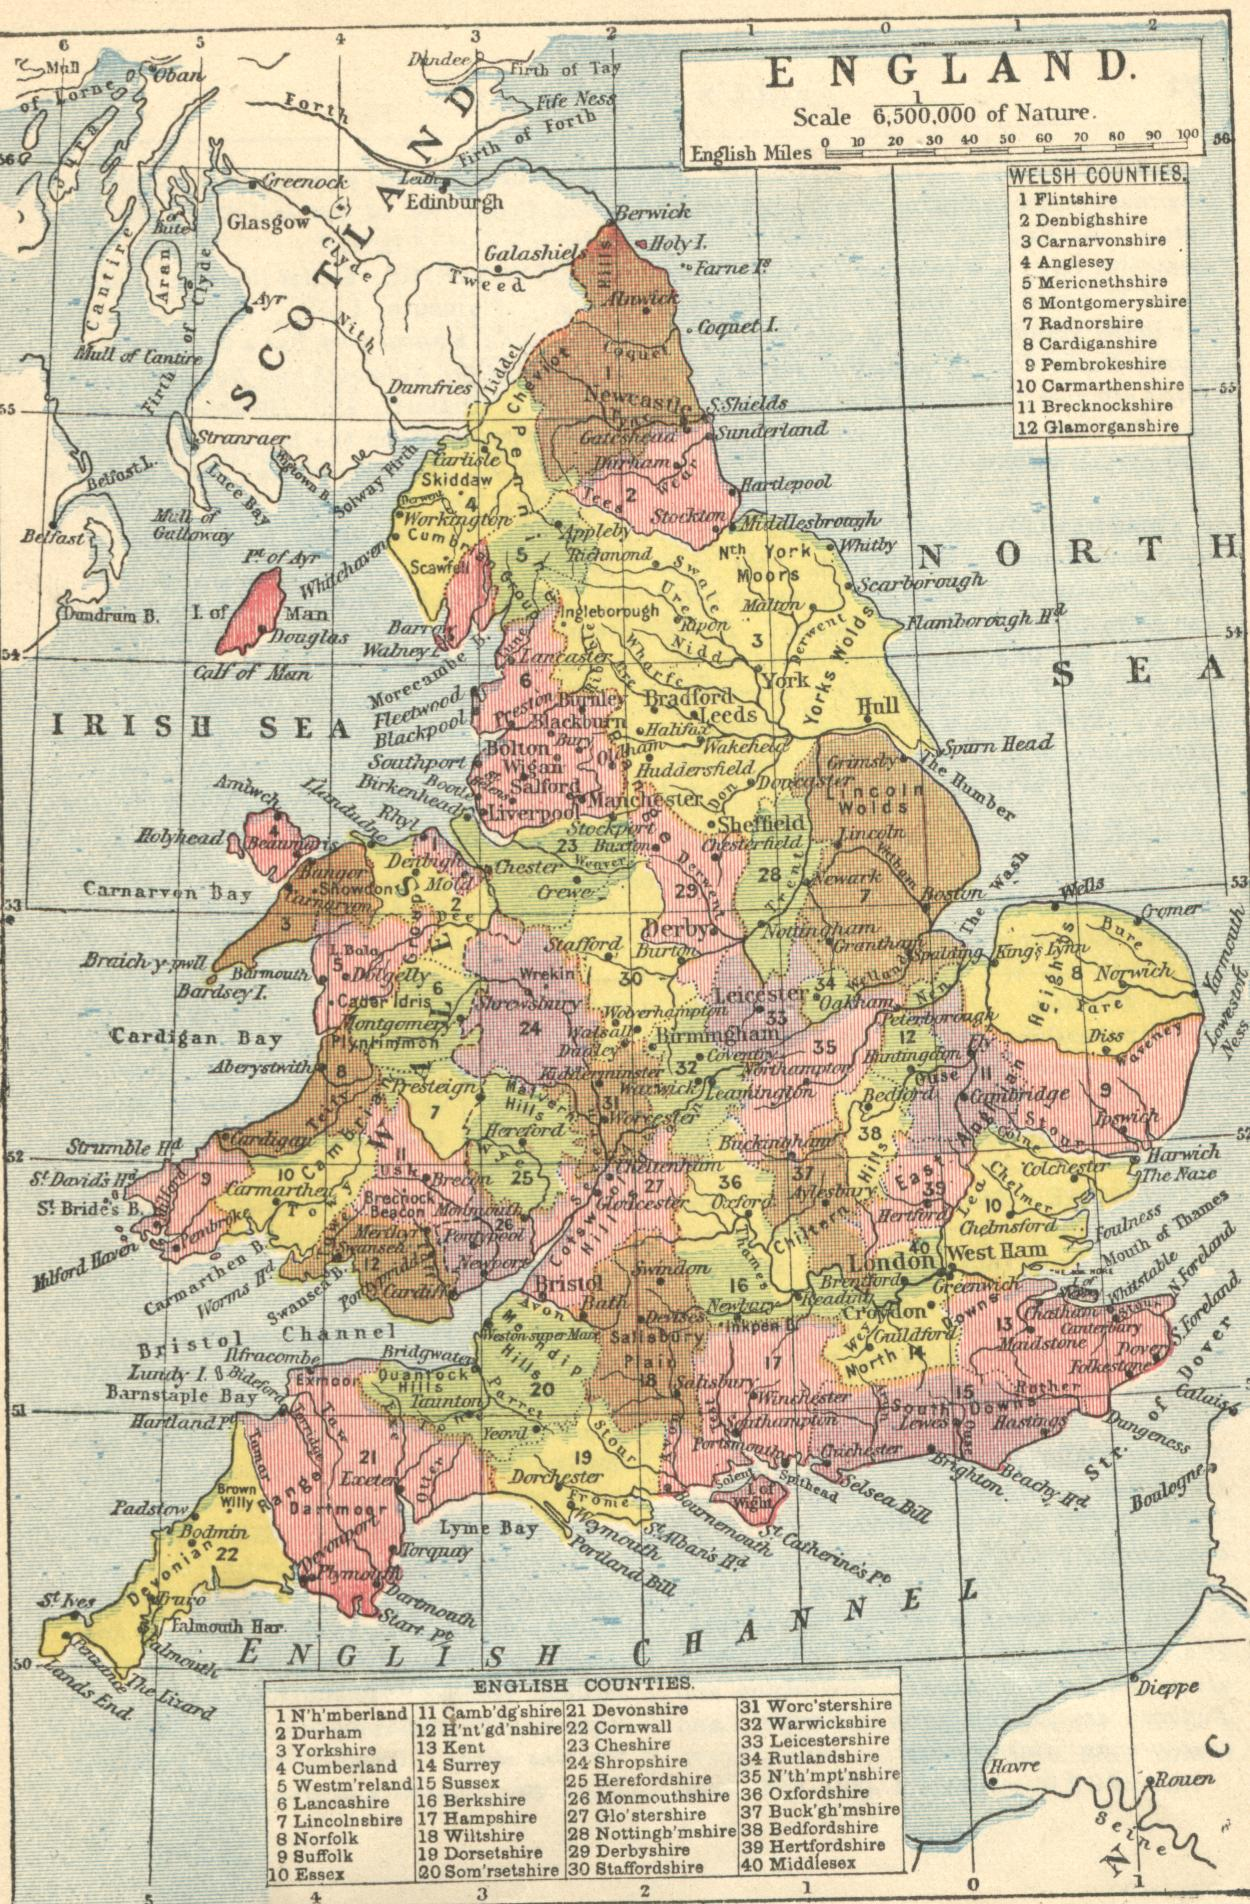 Map of England and Wales, counties, towns and rivers, between 1864